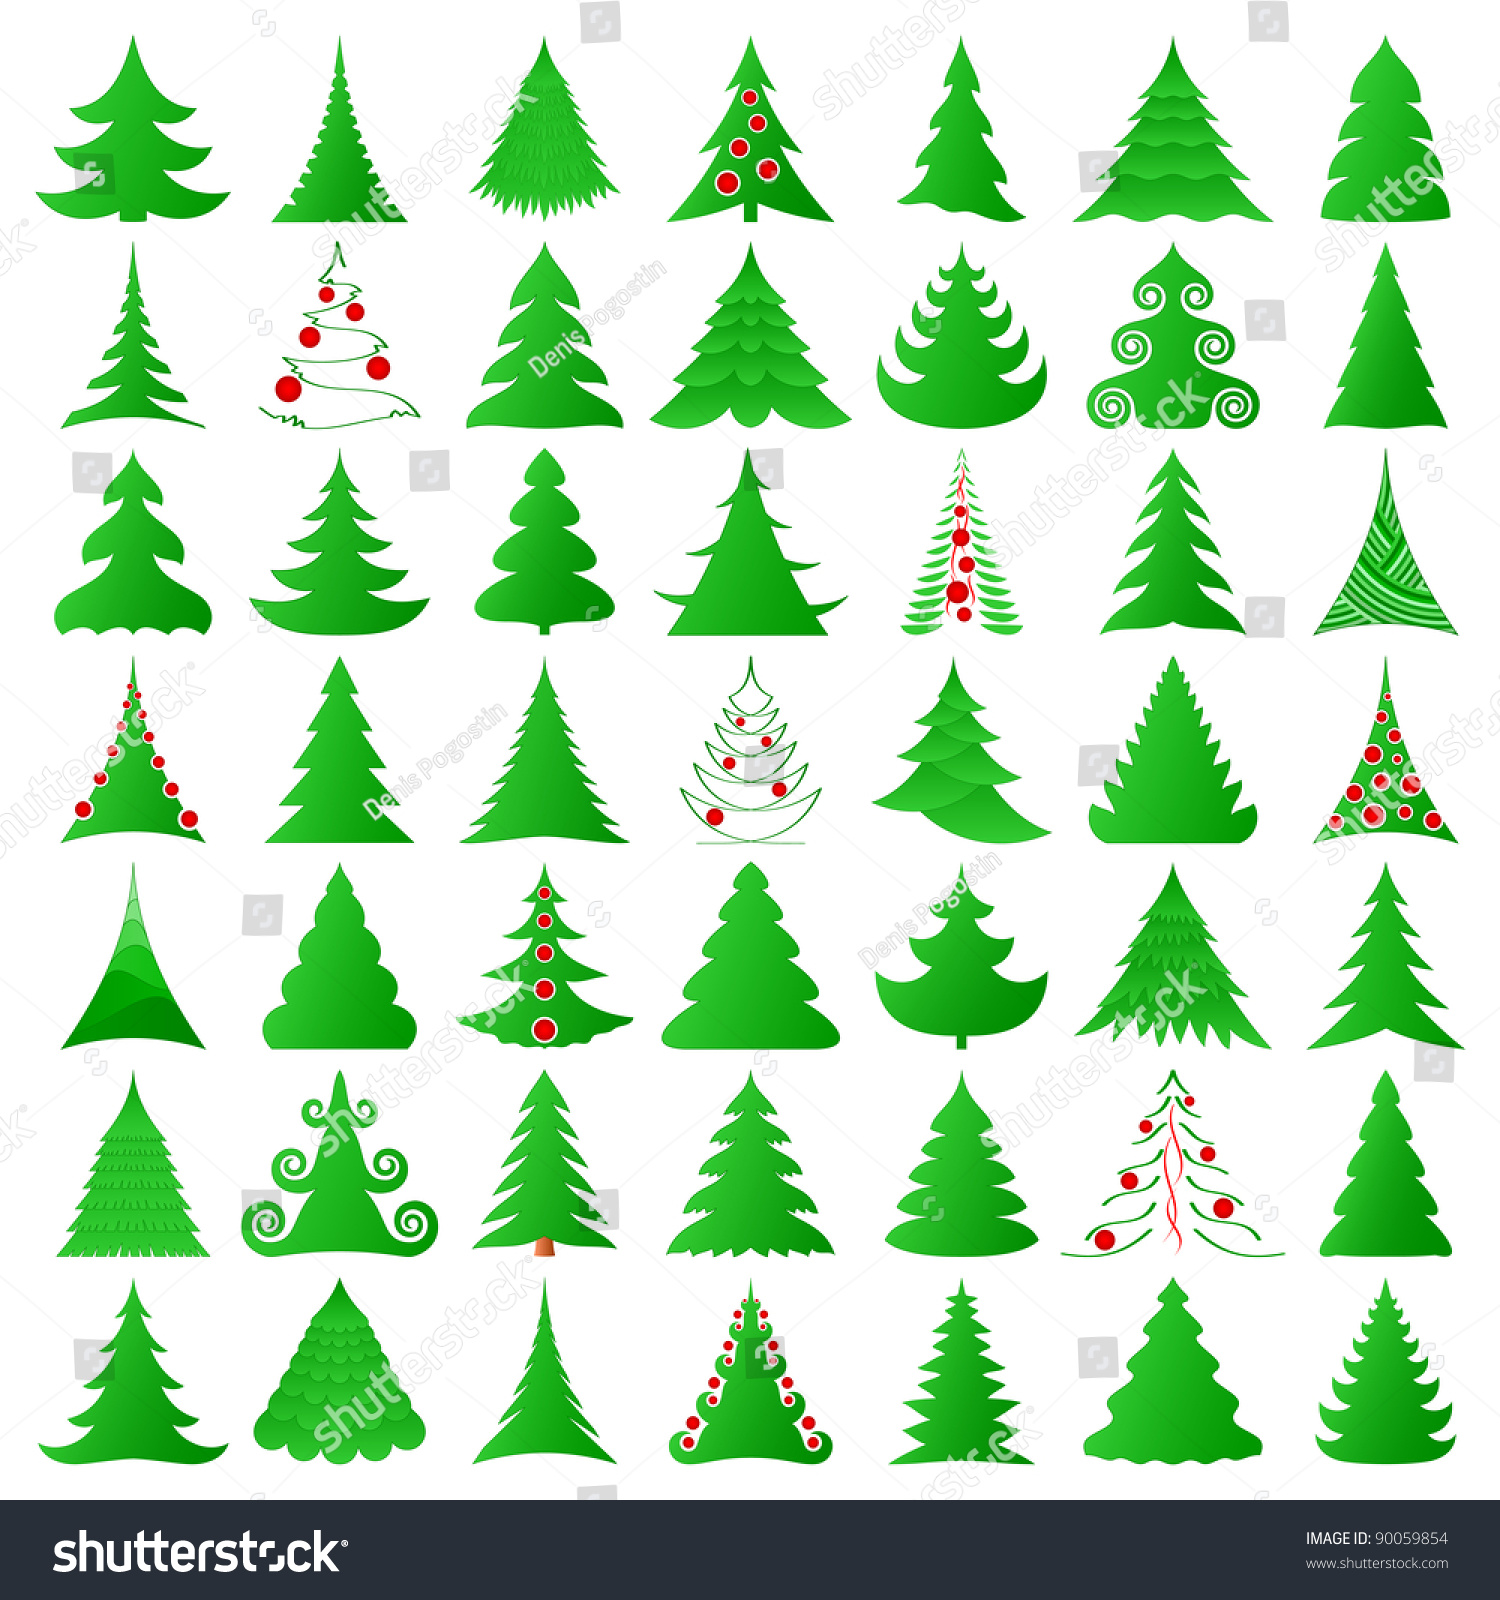 Symbolic Christmas Trees Collection Stock Vector 90059854 Shutterstock